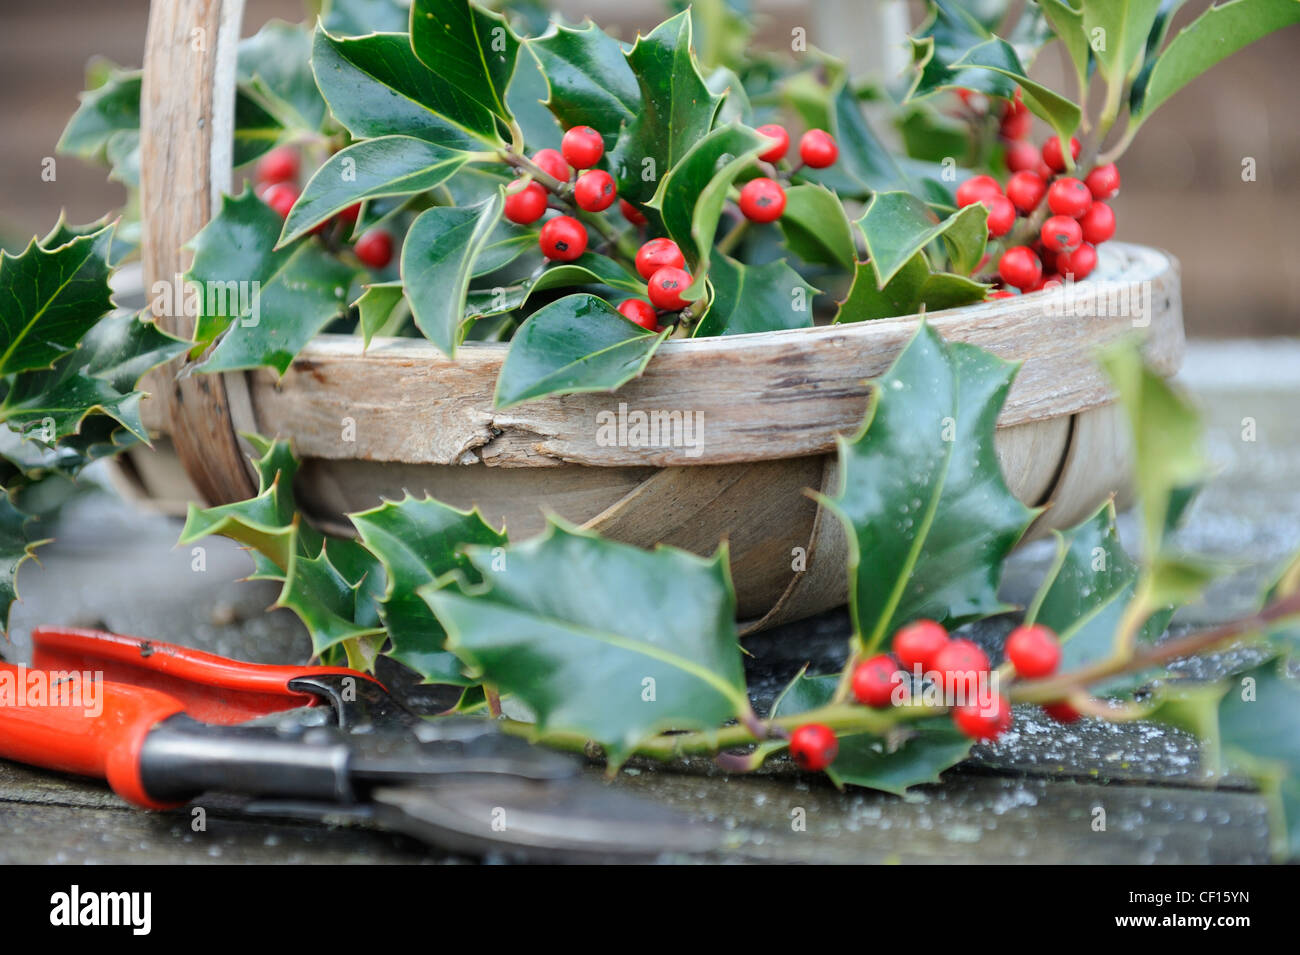 Collecting Holly for christmas decoration, trug of holly with red berries and secateurs, England, December - Stock Image